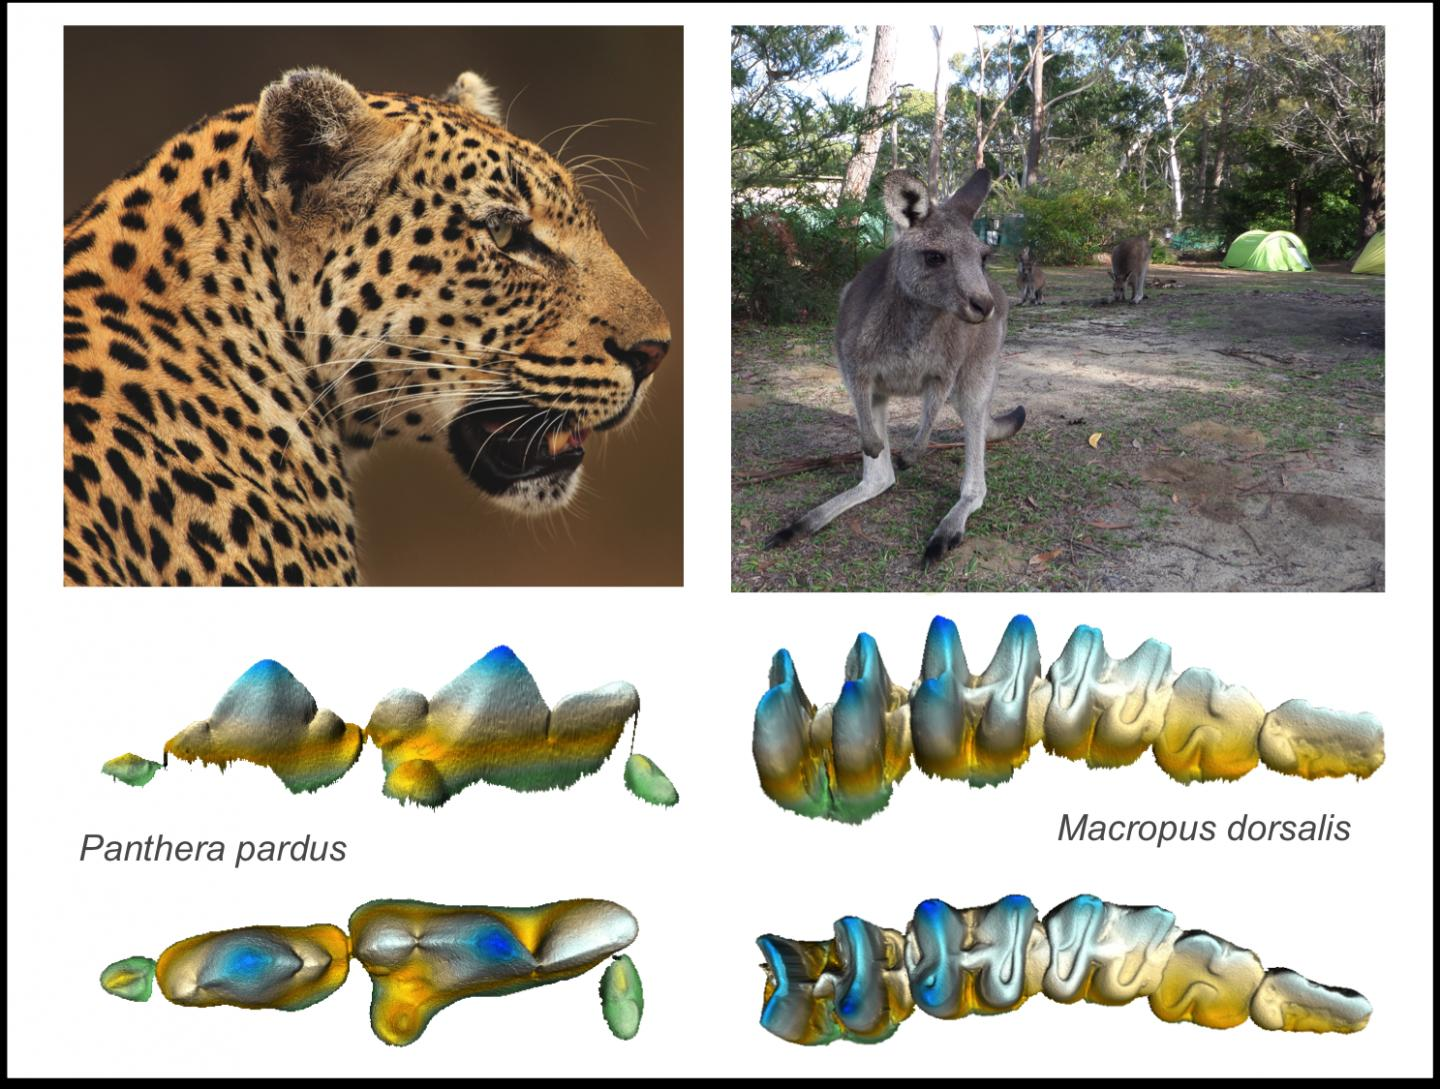 Cheetah Kangaroo Teeth Image